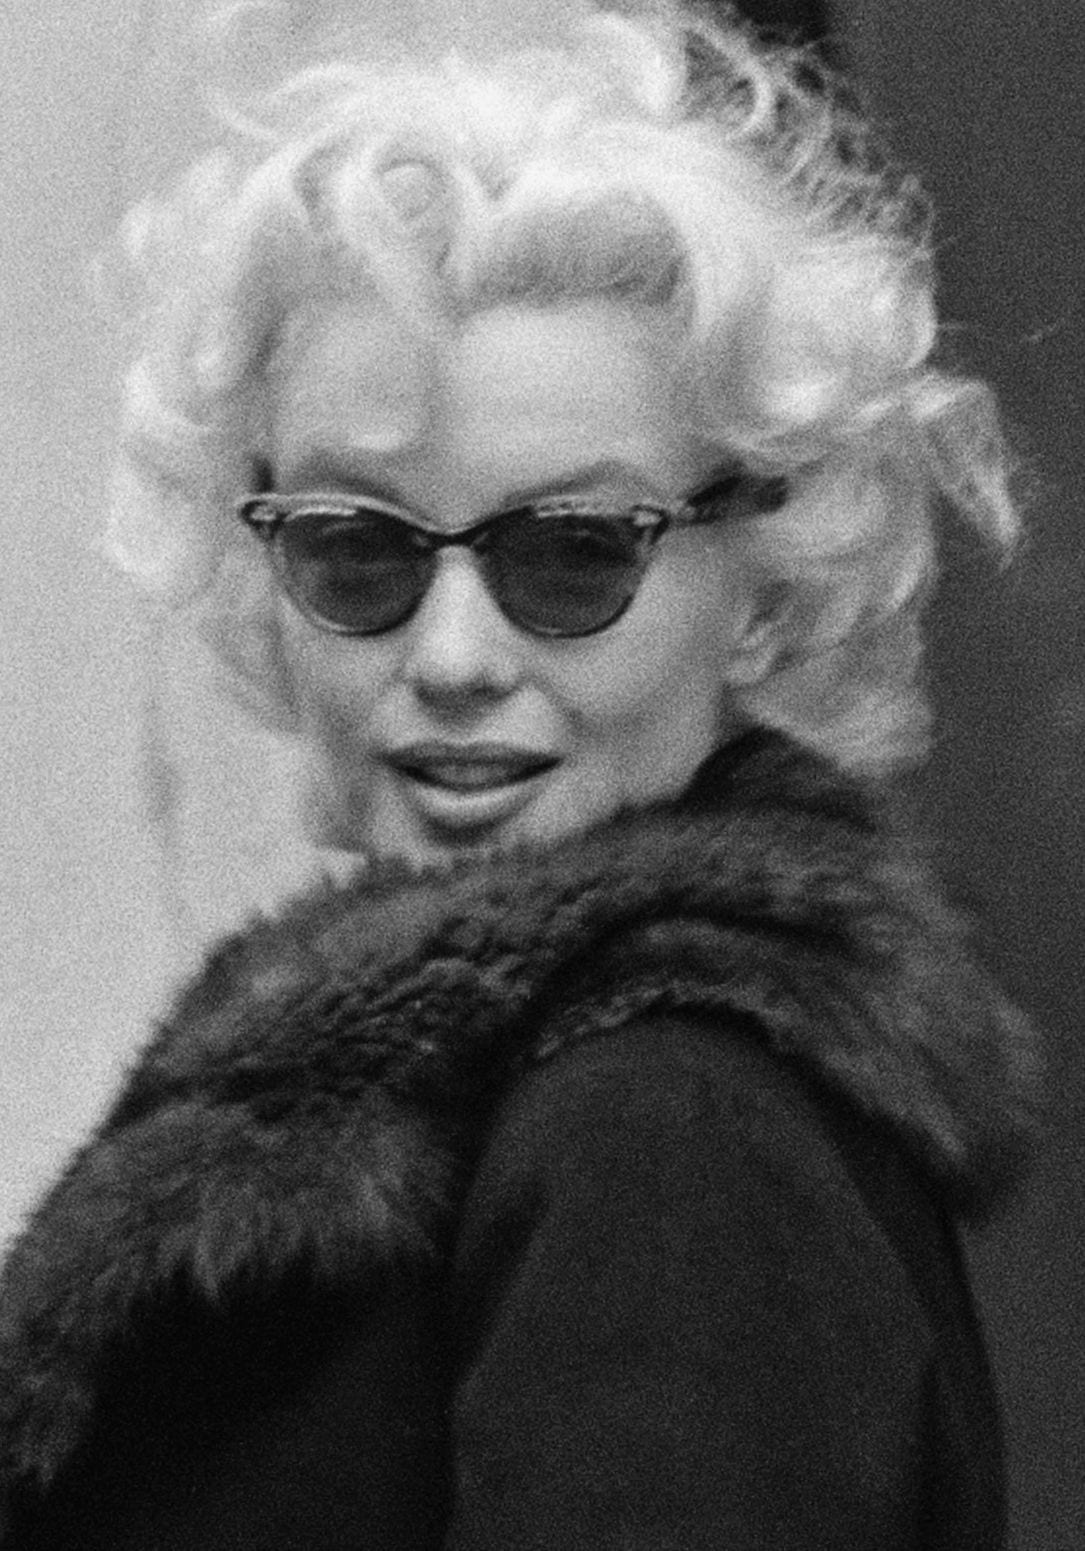 marilyn monroe as a cultural icon Marilyn monroe: a dead celebrity the pop culture icon although marilyn monroe changed her similar to the death of god through byzantine icons, gold marilyn.